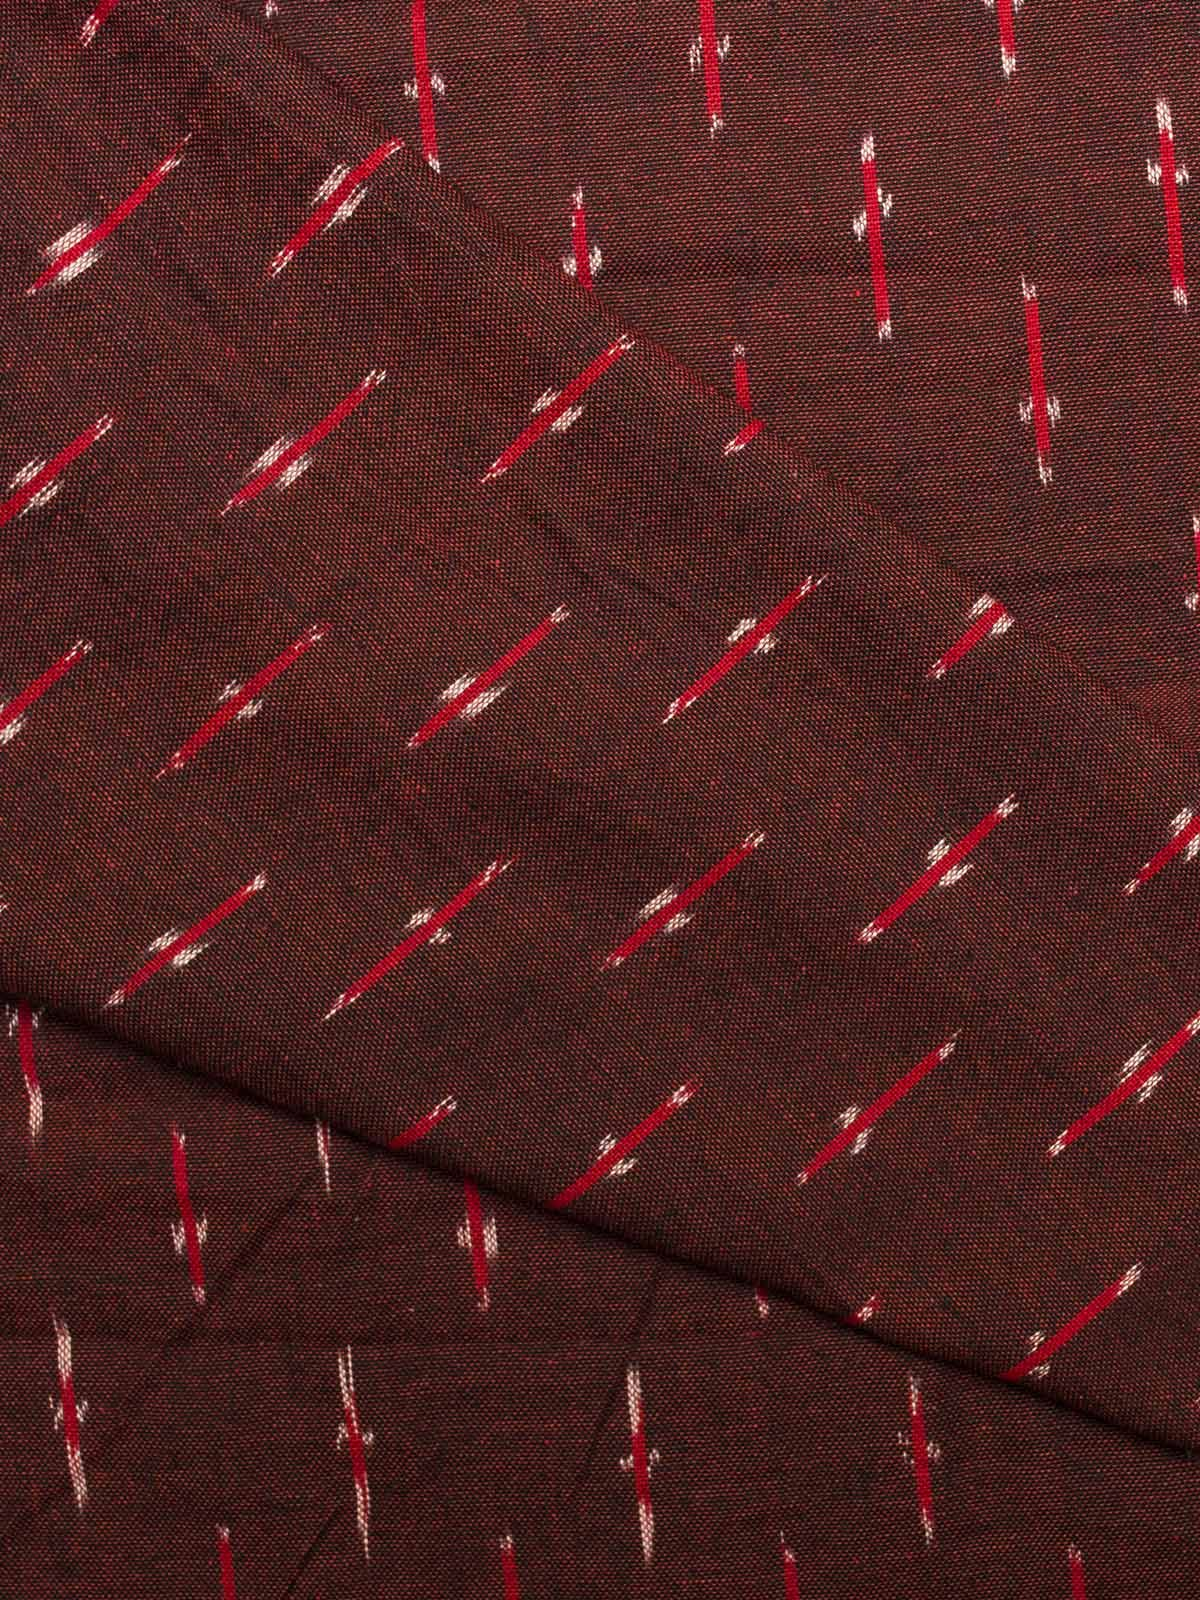 Red and Brown Ikat Cotton Fabric